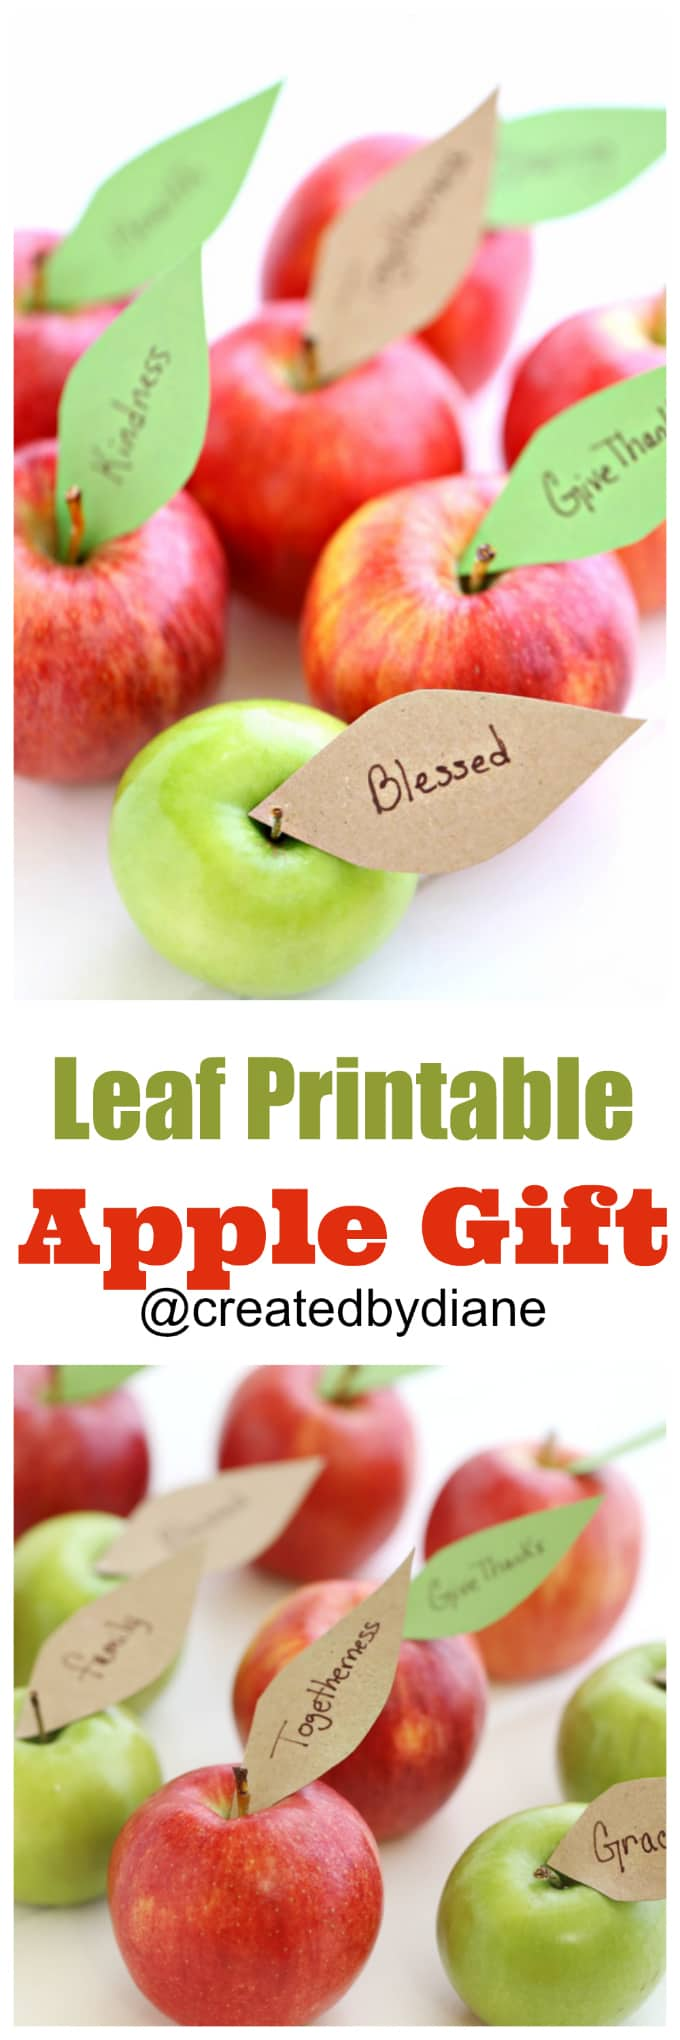 image relating to Apples to Apples Cards Printable known as Apples with leaf printable Intended by means of Diane